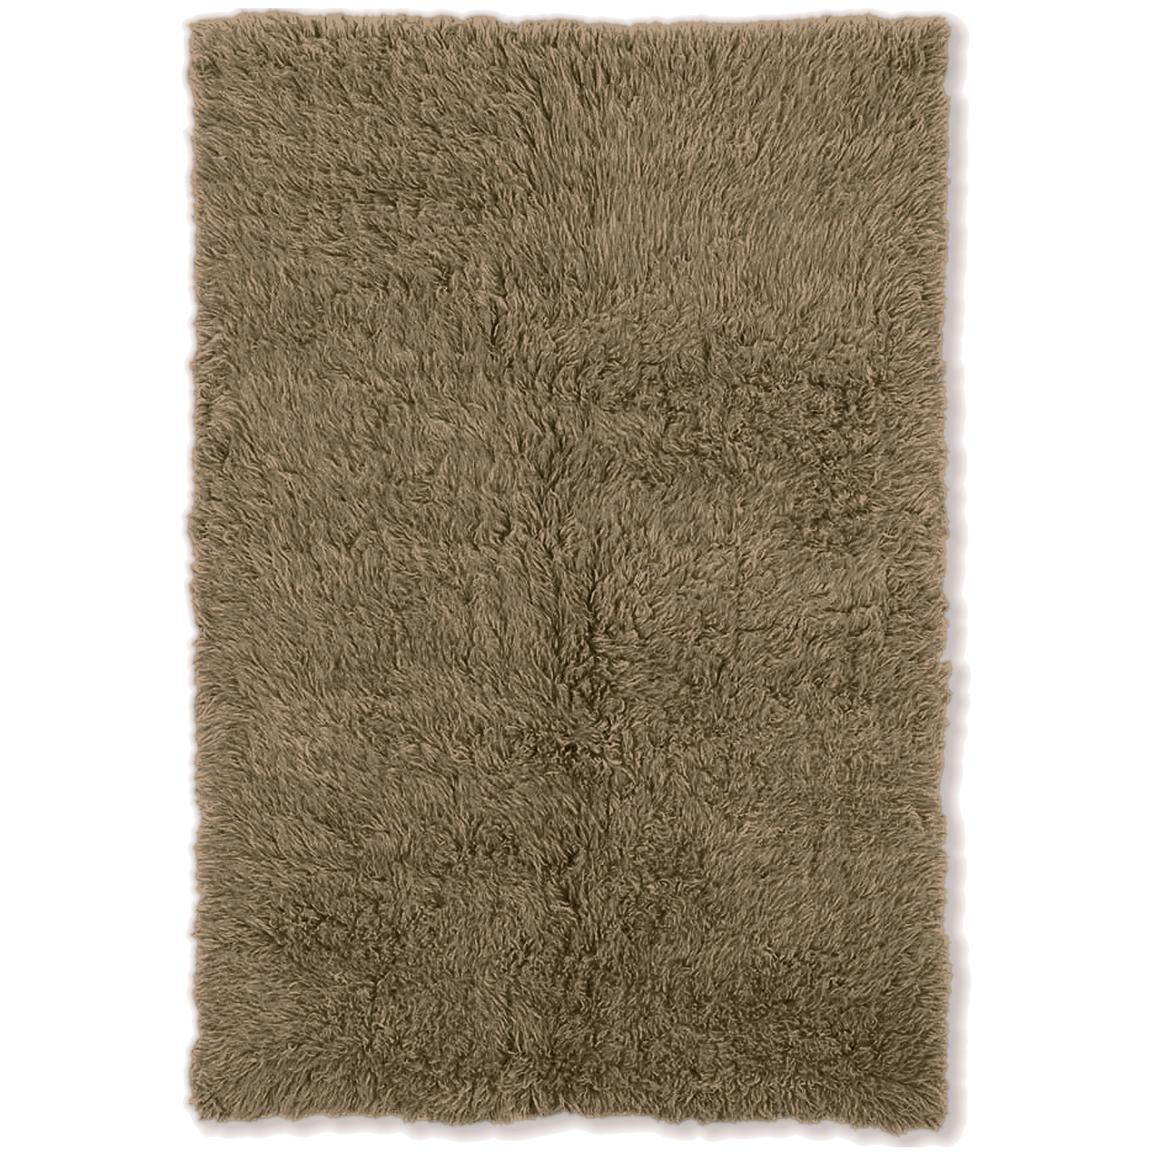 Linon Home Decor, Inc. Flokati Collection Rug, Mushroom